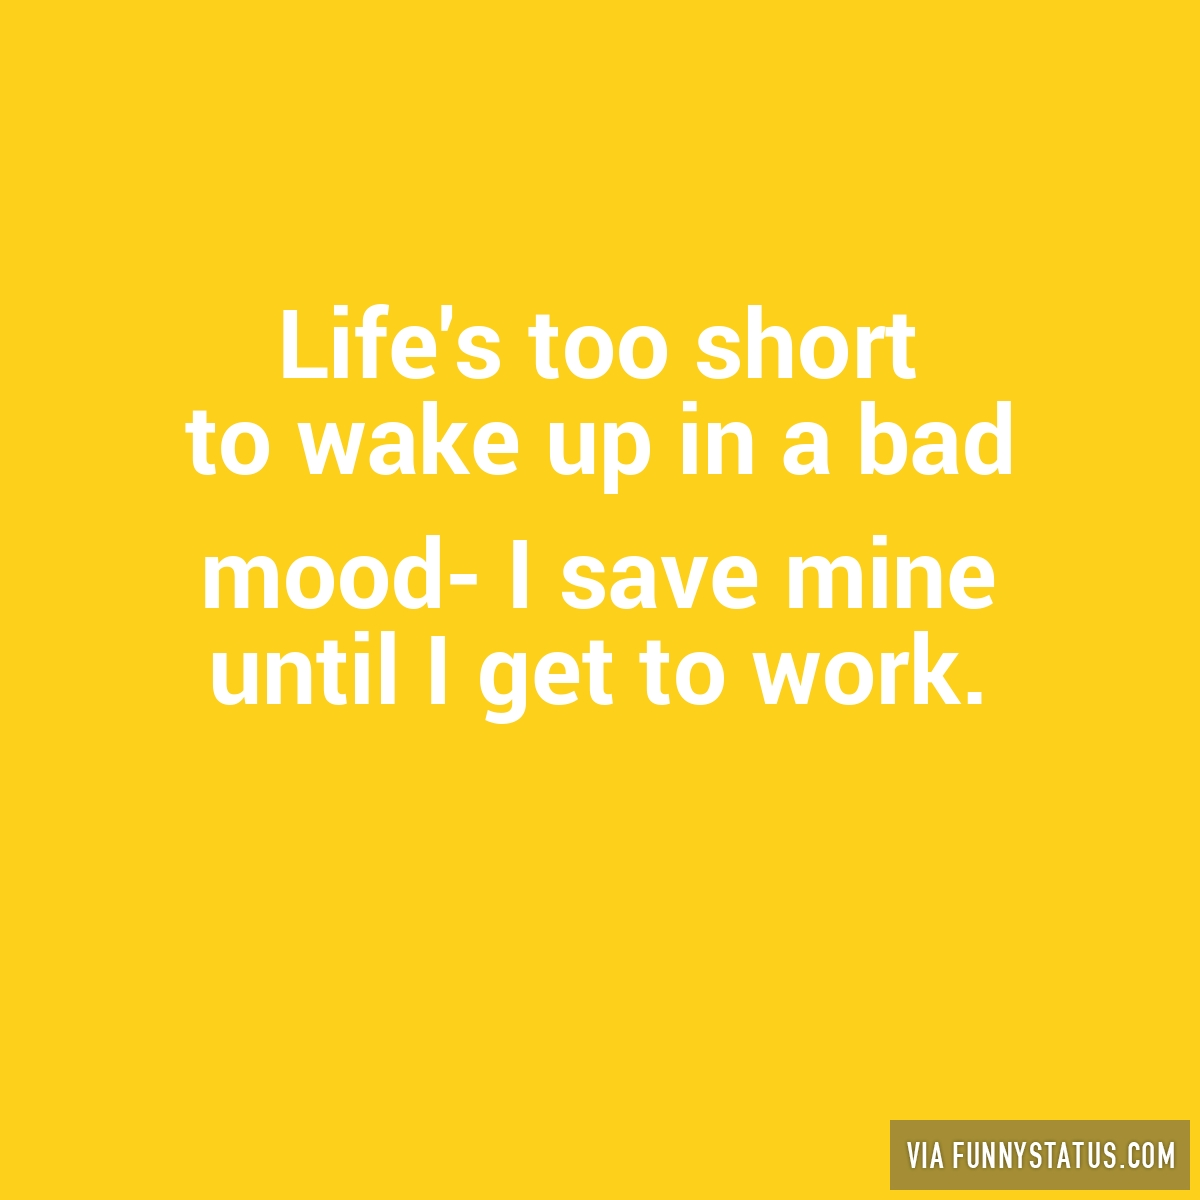 Lifes Too Short Quotes Life's Too Short To Wake Up In A Bad Mood I Save…  Funny Status